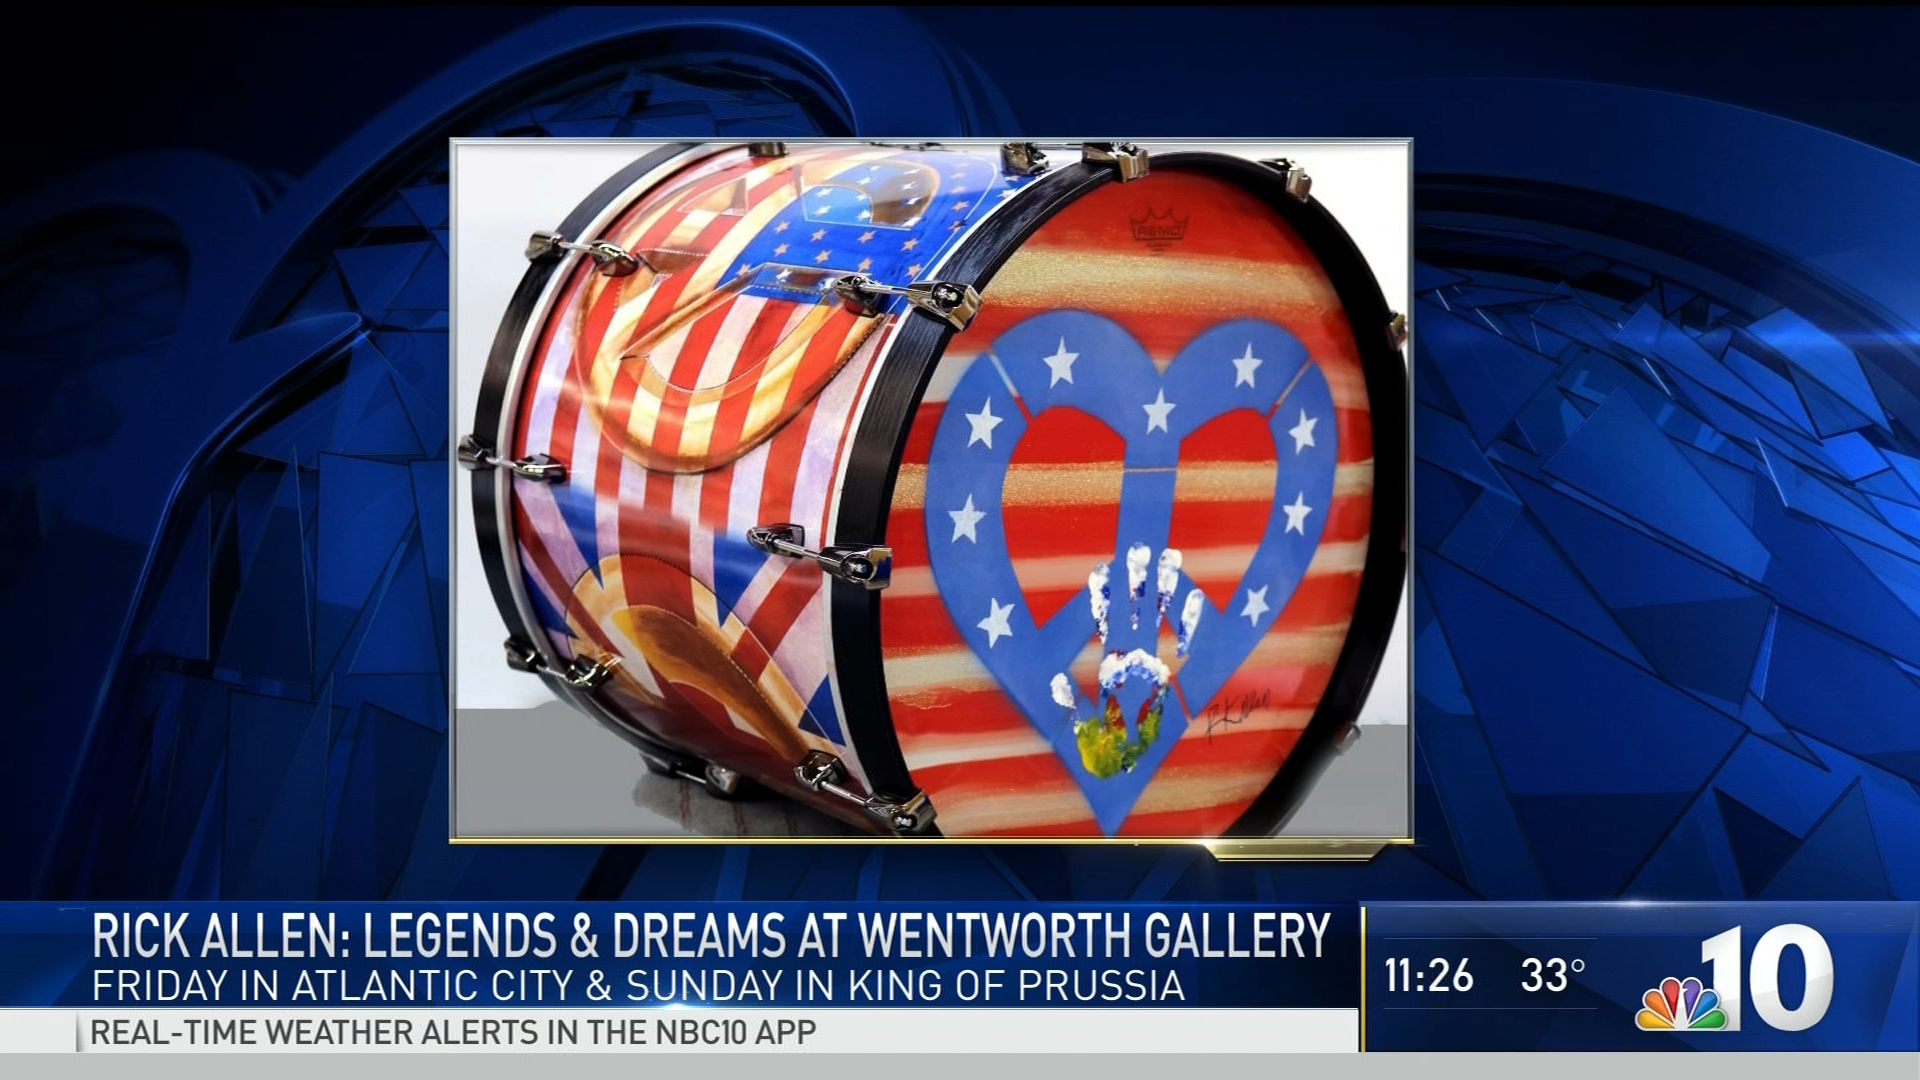 Def Leppard's Rick Allen Bringing Art Show to Philly Area